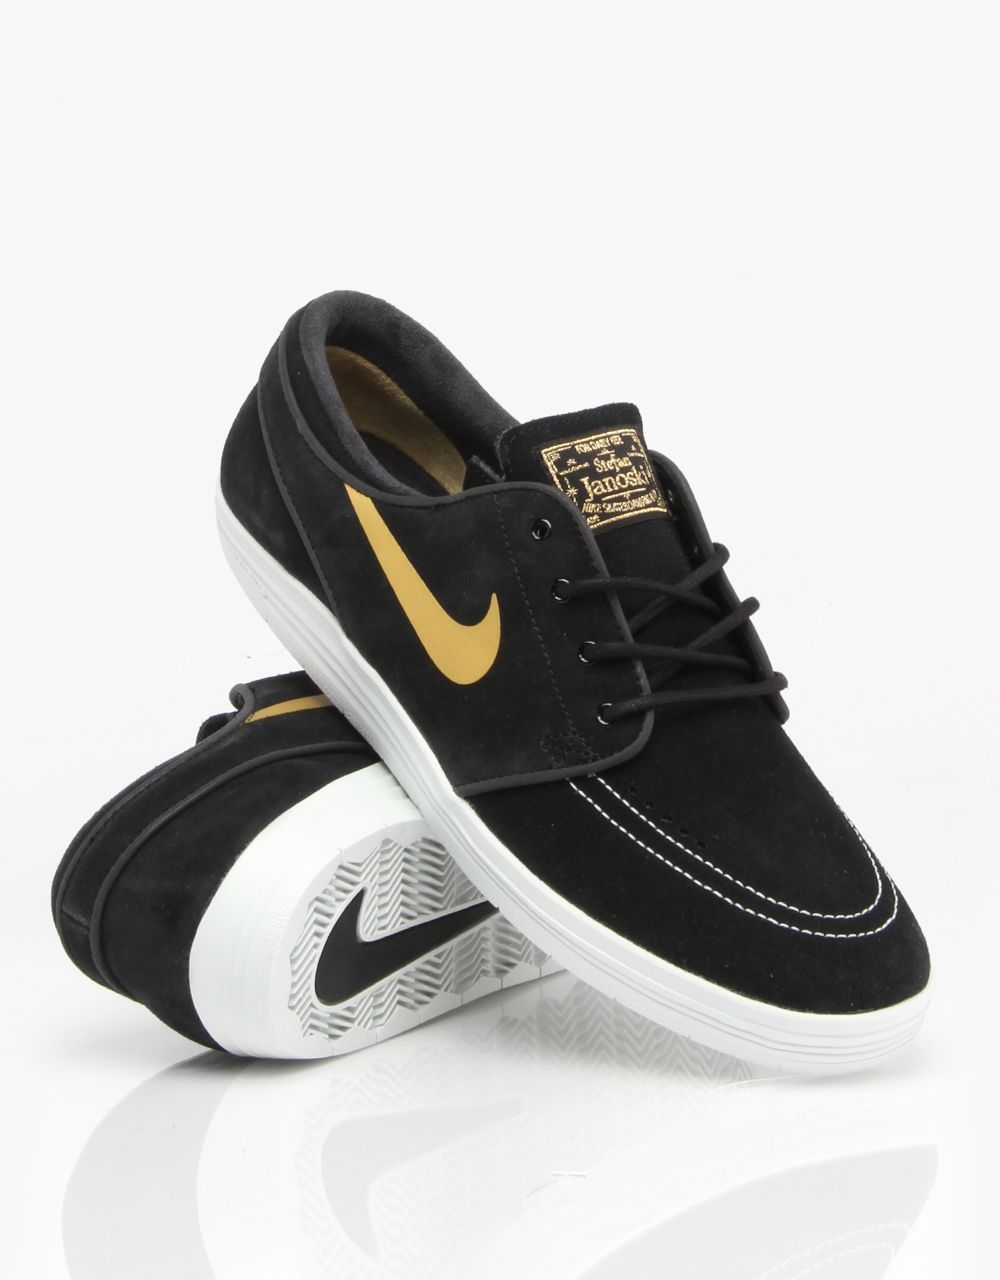 8e2695fff67 Nike SB Lunar Stefan Janoski Skate Shoes - Black Metallic Gold- White -  RouteOne.co.uk